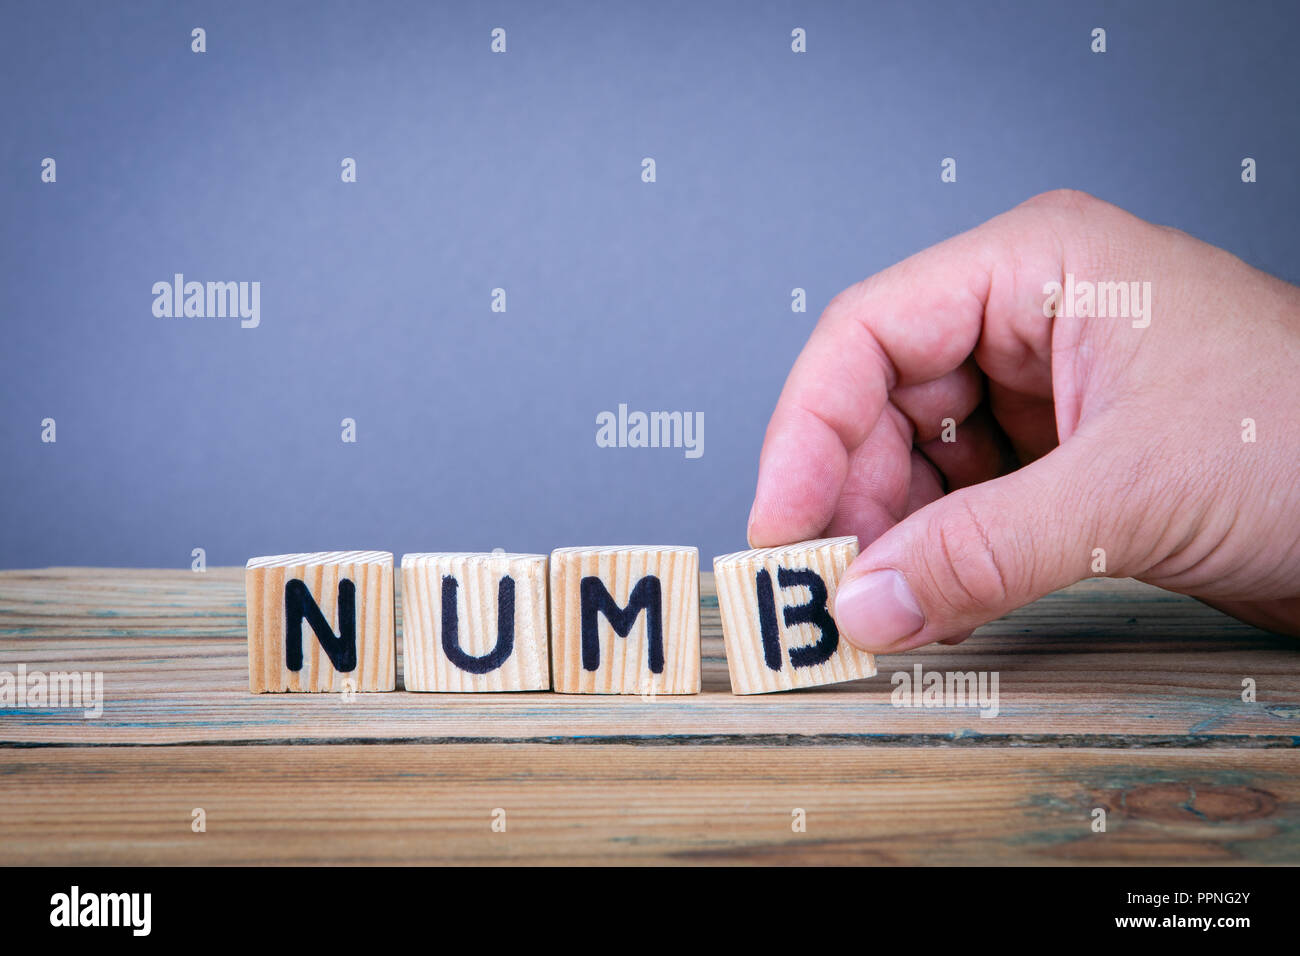 numb. Wooden letters on the office desk - Stock Image